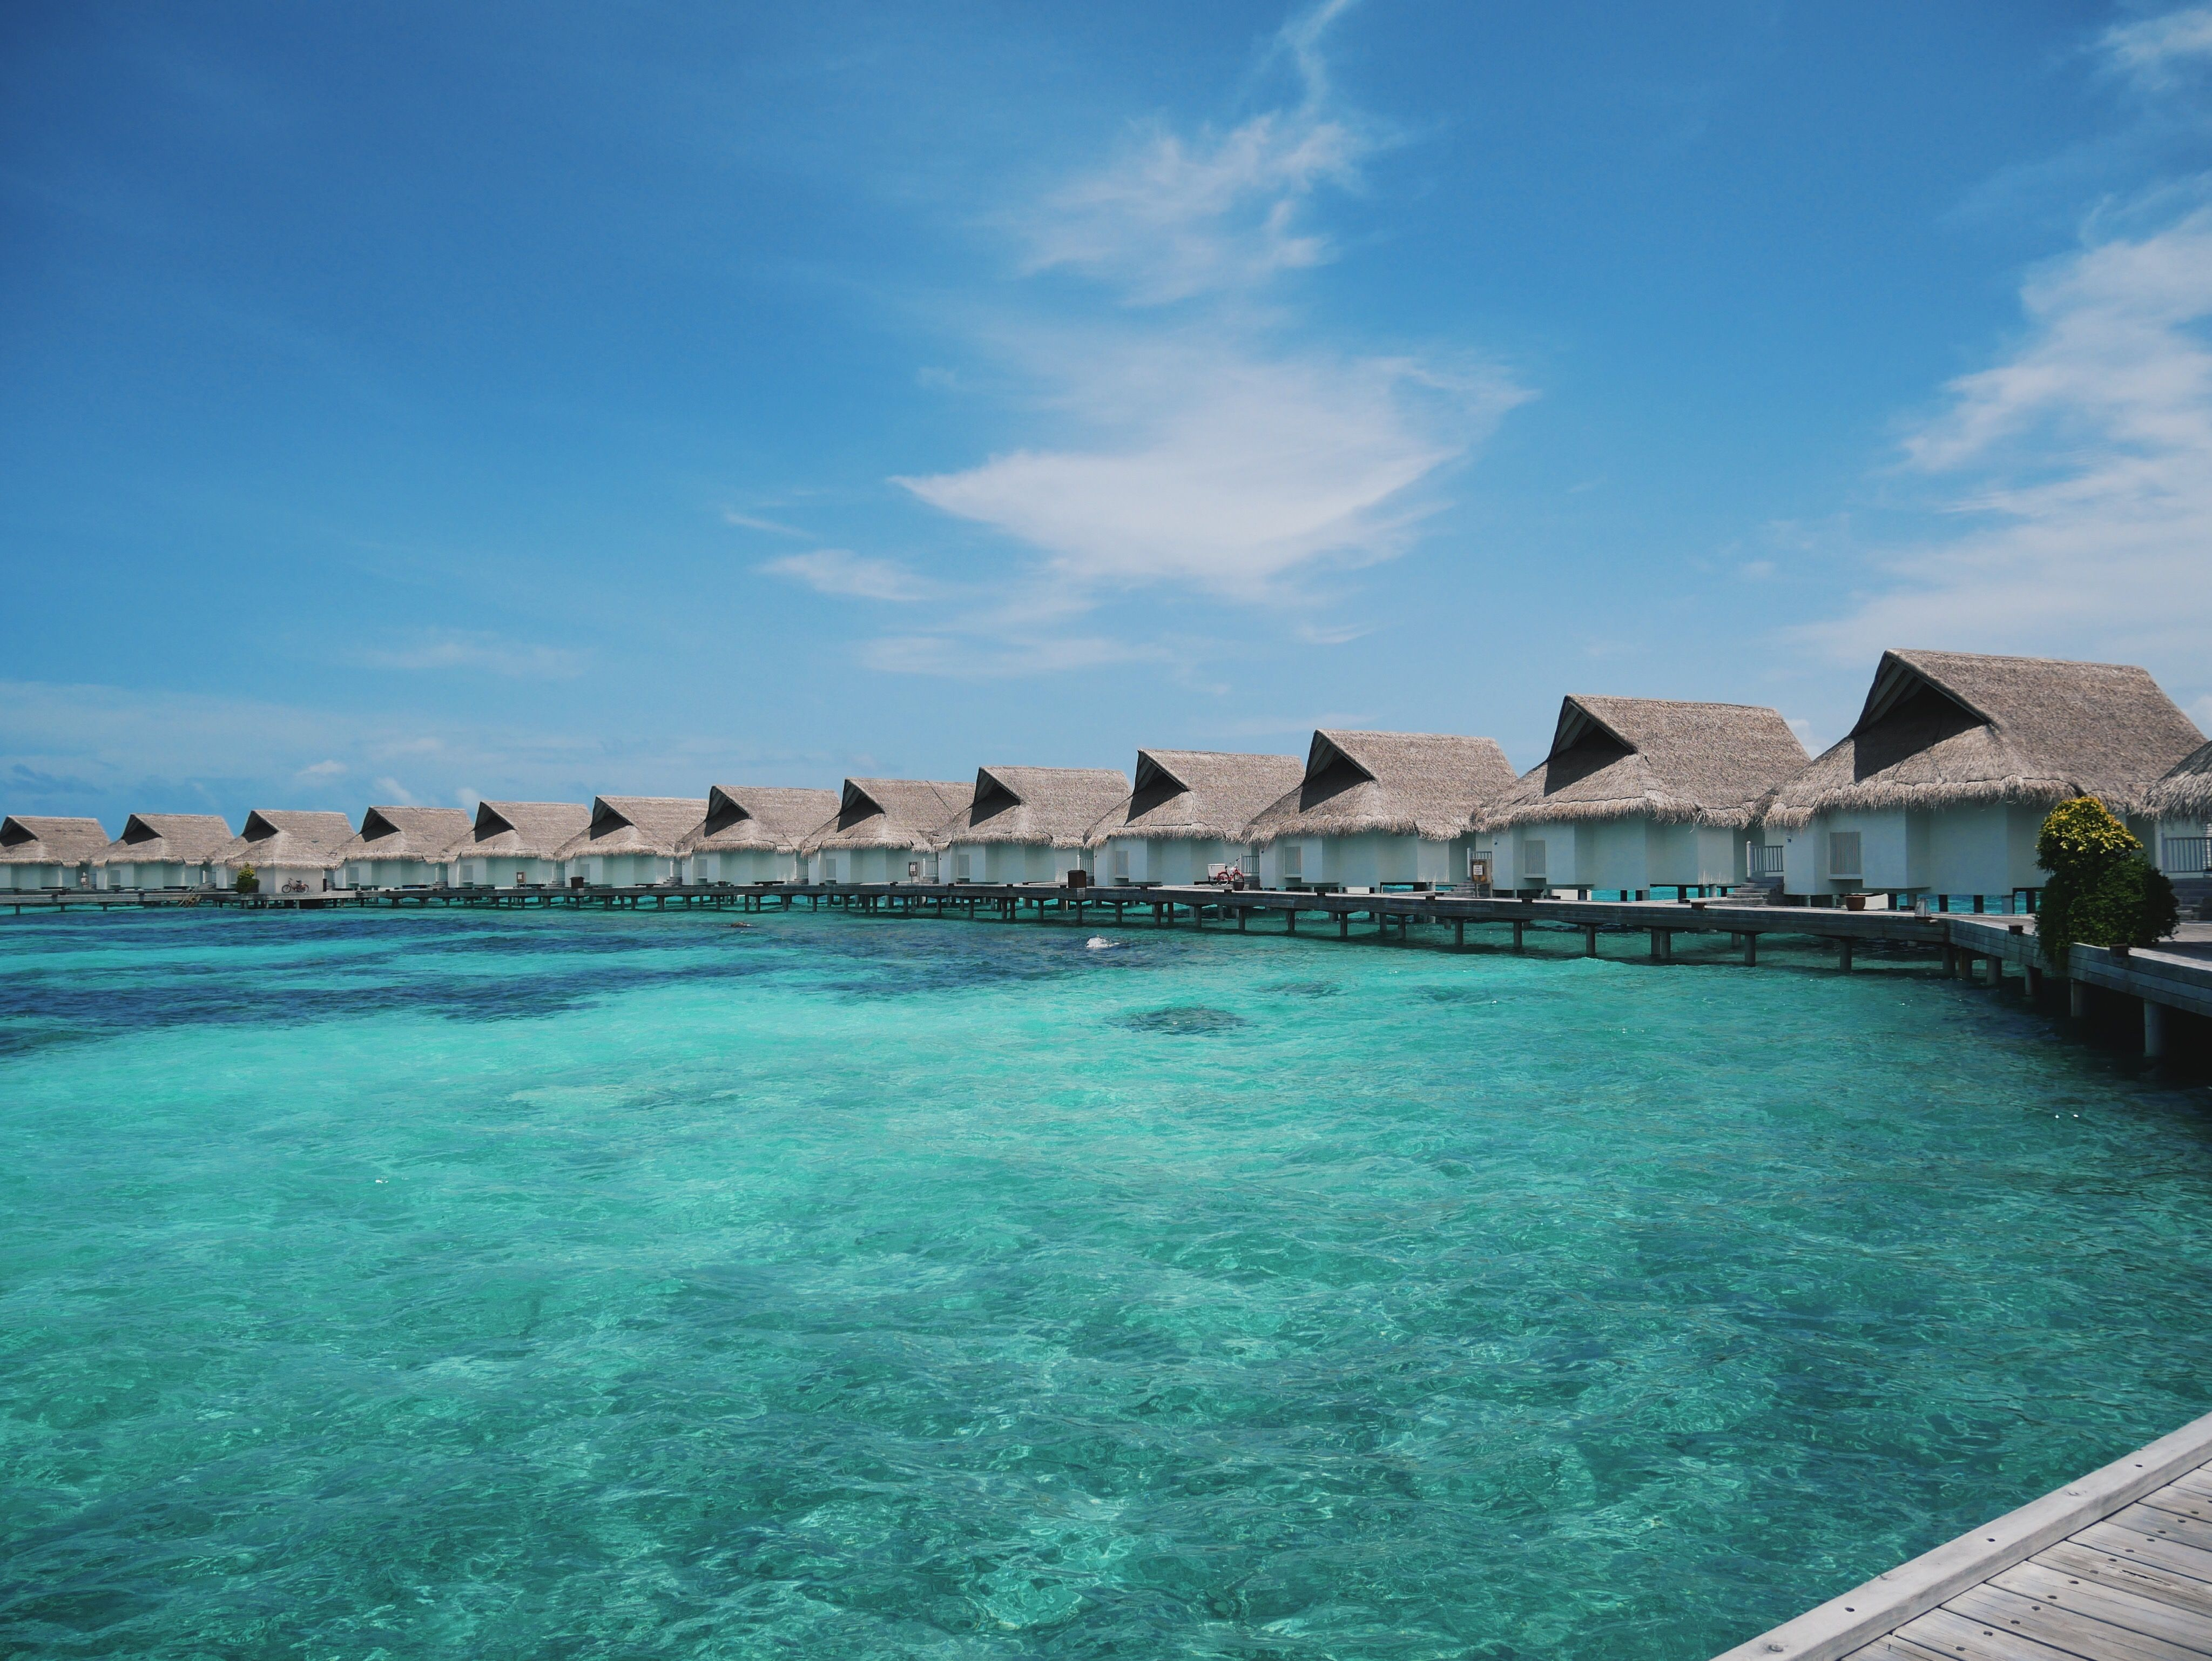 This Is How You D Imagine The Maldives The Inspectorlux Episode 3 Brings You Inside This Resort For A Virtual Holiday Maldives Grand Island Resort